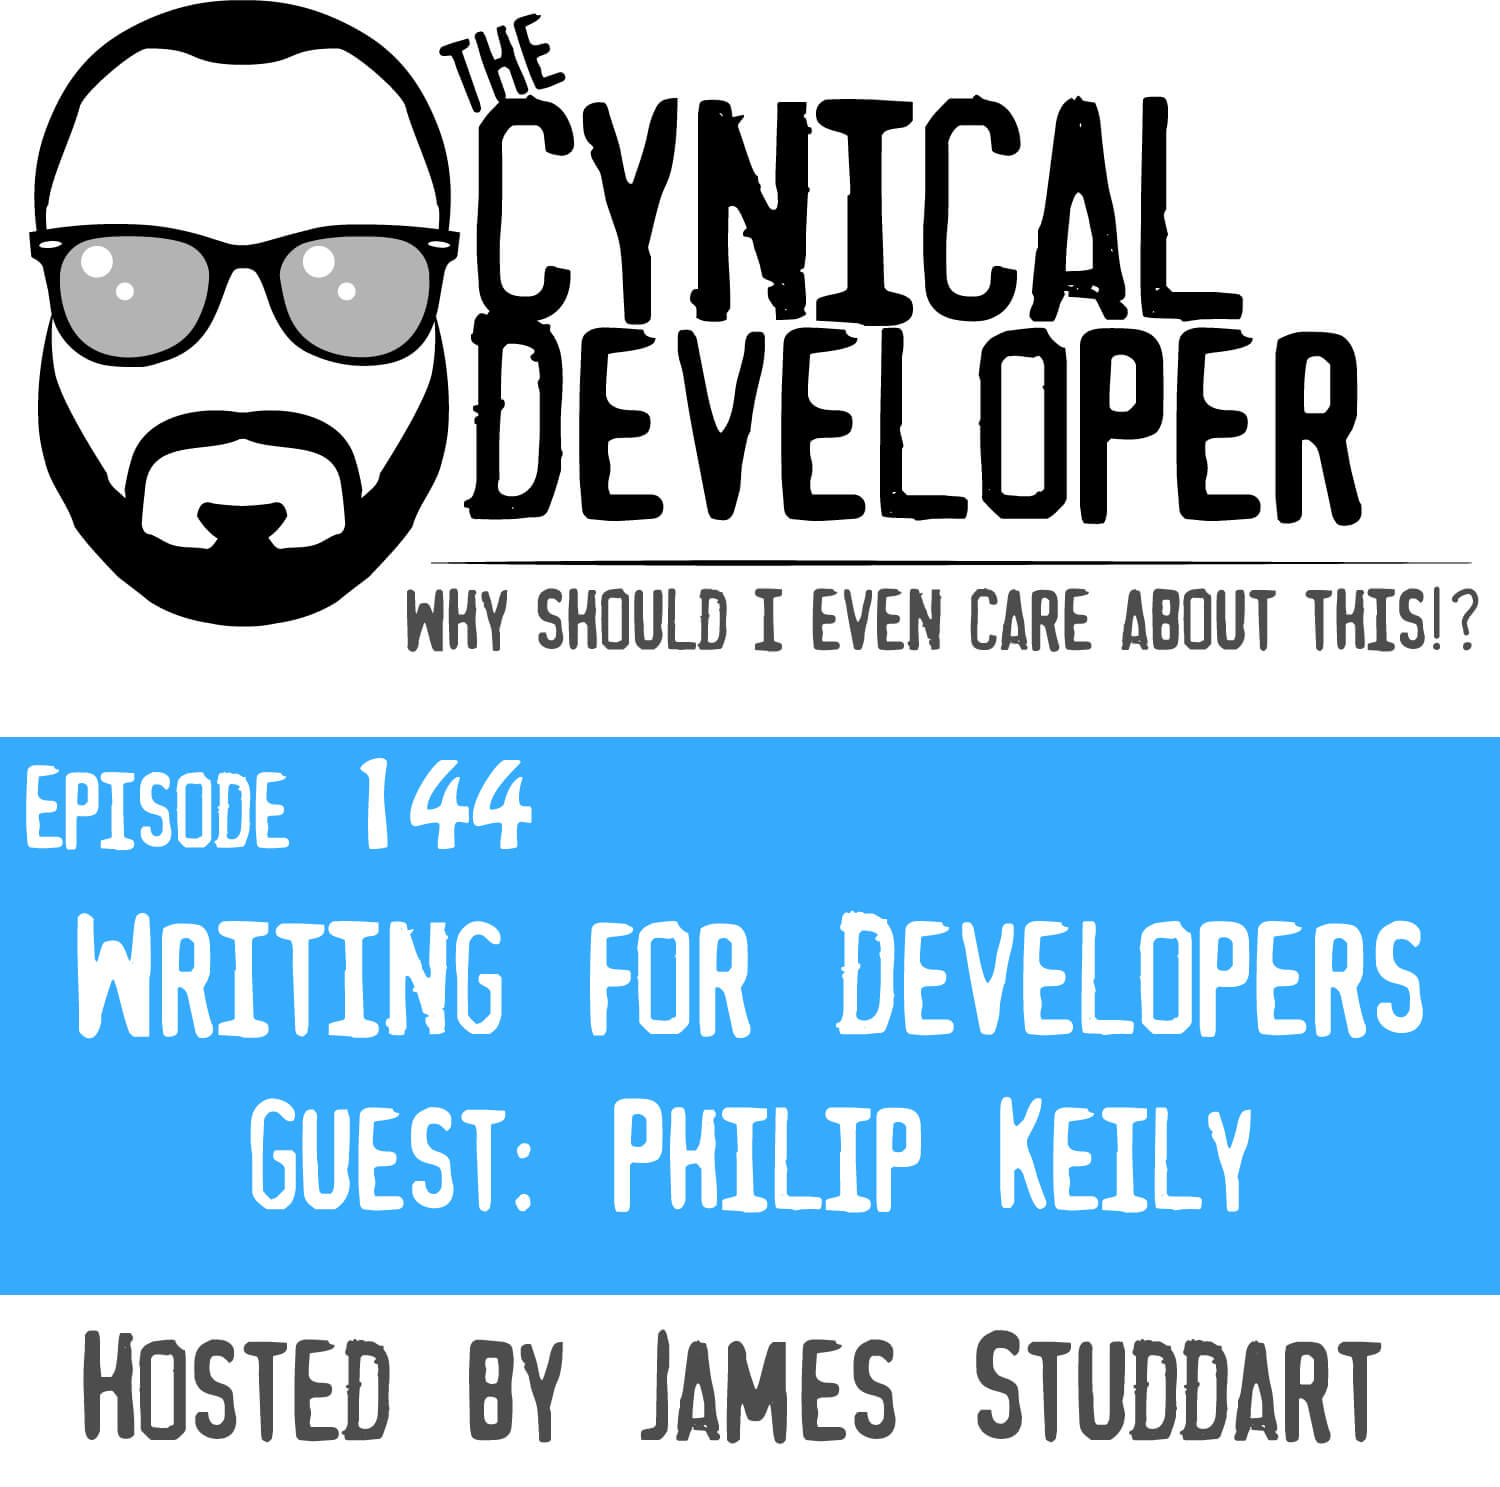 Episode 144 - Writing for Developers